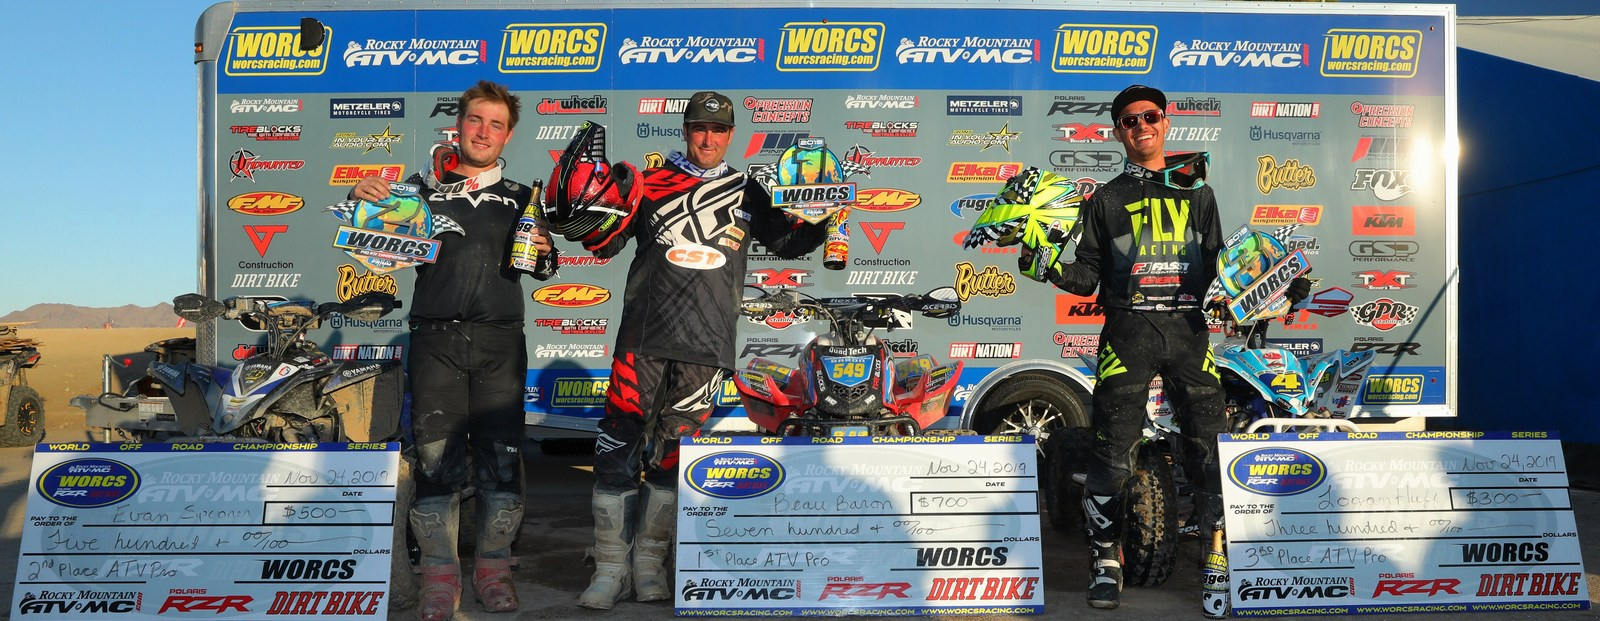 11-podium-pro-atv-worcs-racing